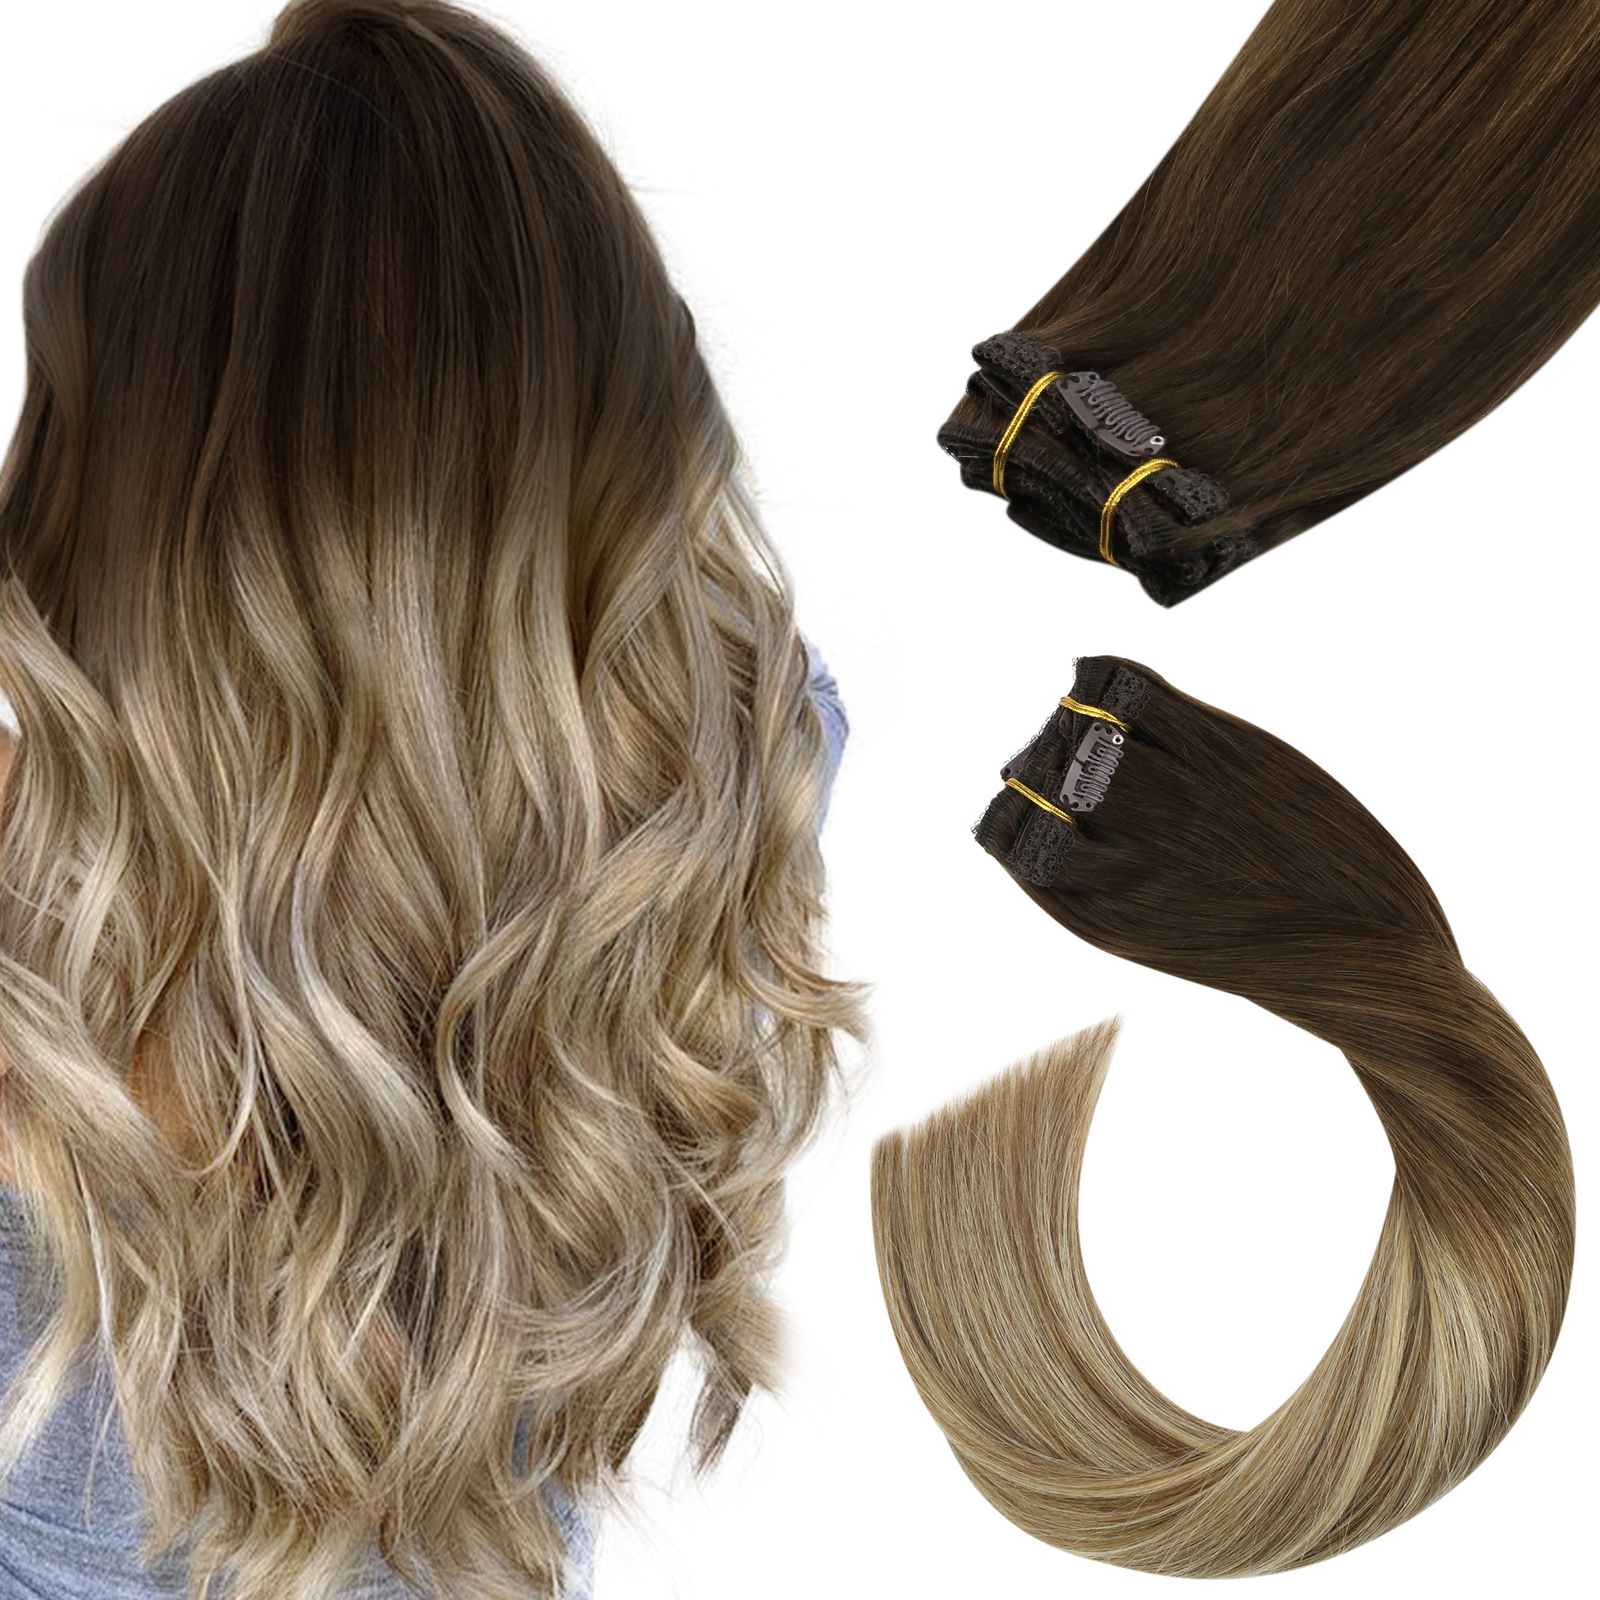 Human-Hair-Extensions Clip-In Ugeat Dark-Roots Double-Weft Balayage-Color 120g/7pcs 3/8/22